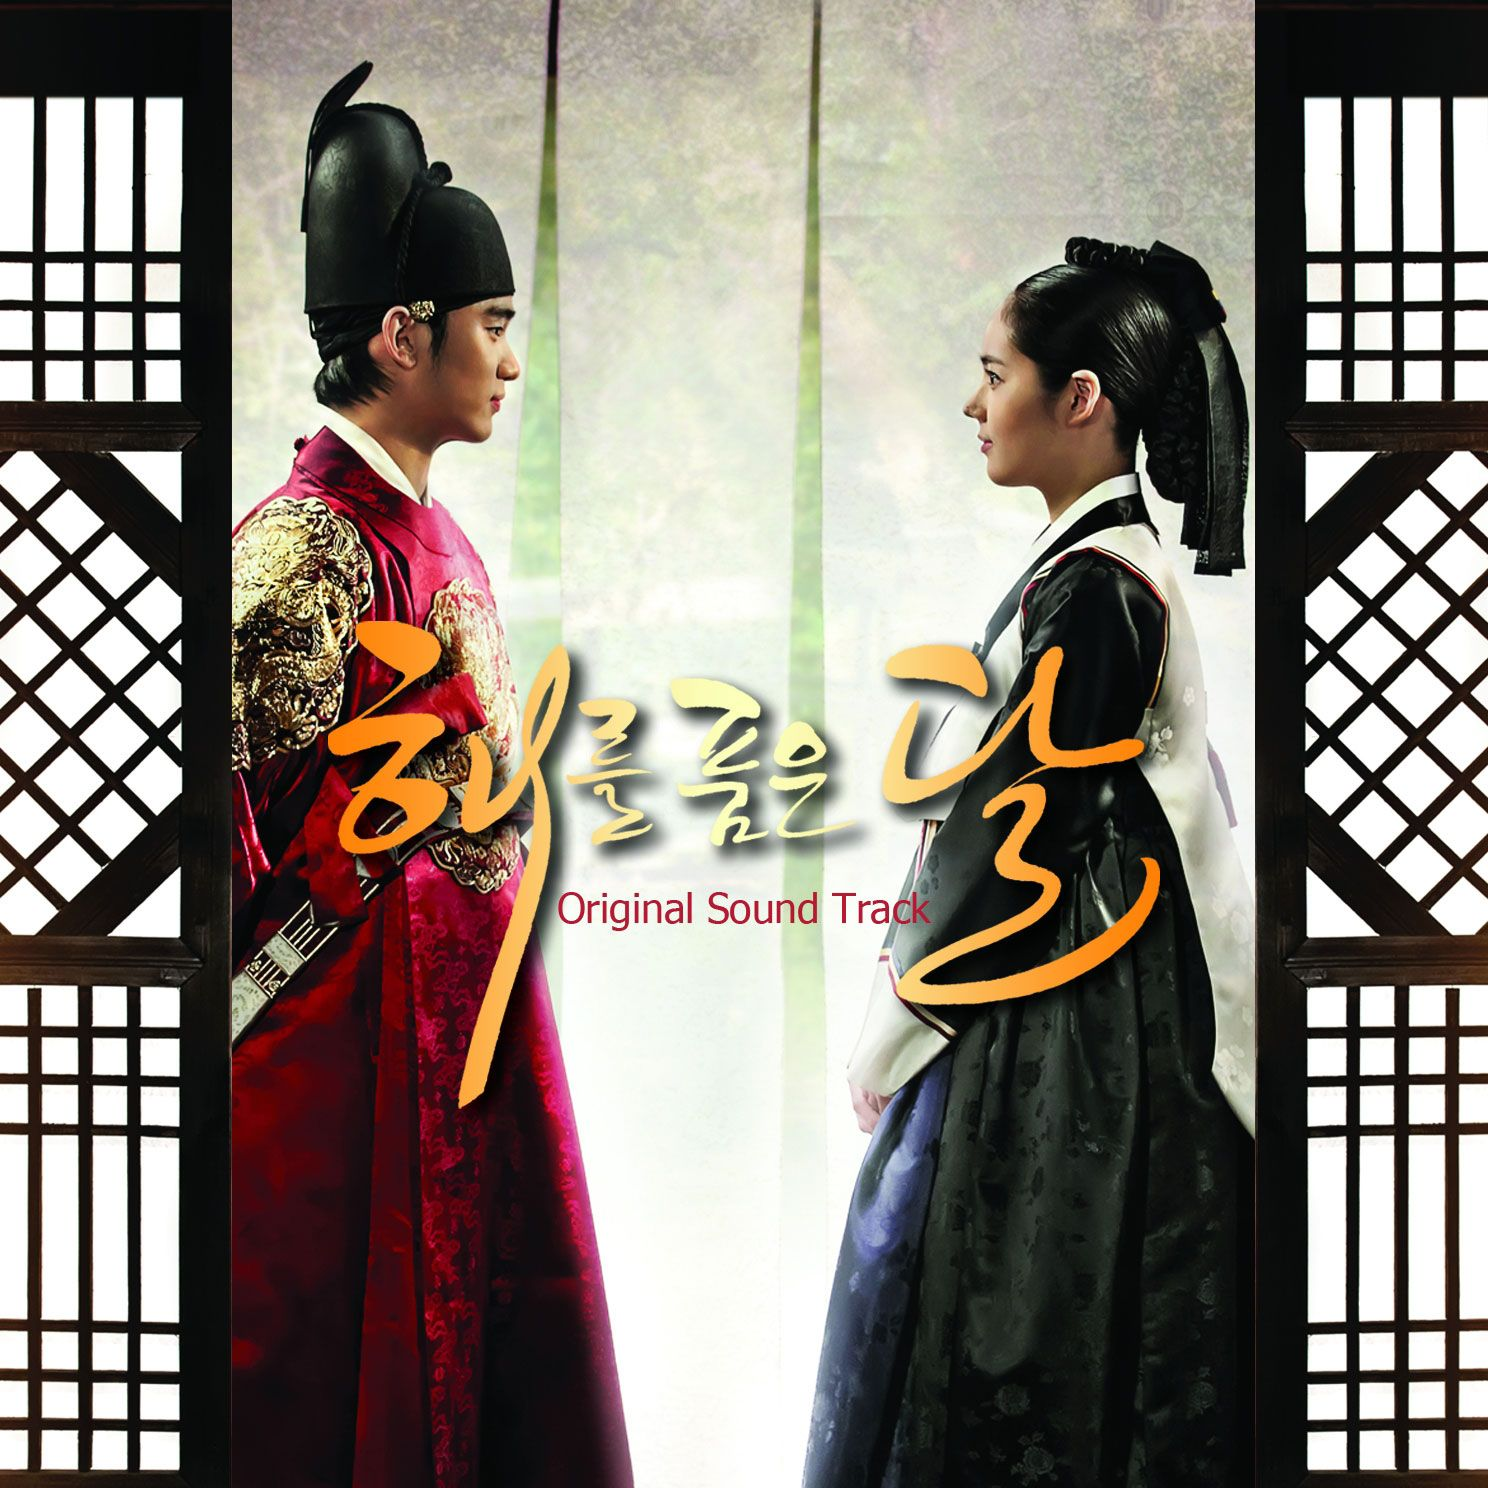 [Album] Various Artists - The Moon That Embraces The Sun OST